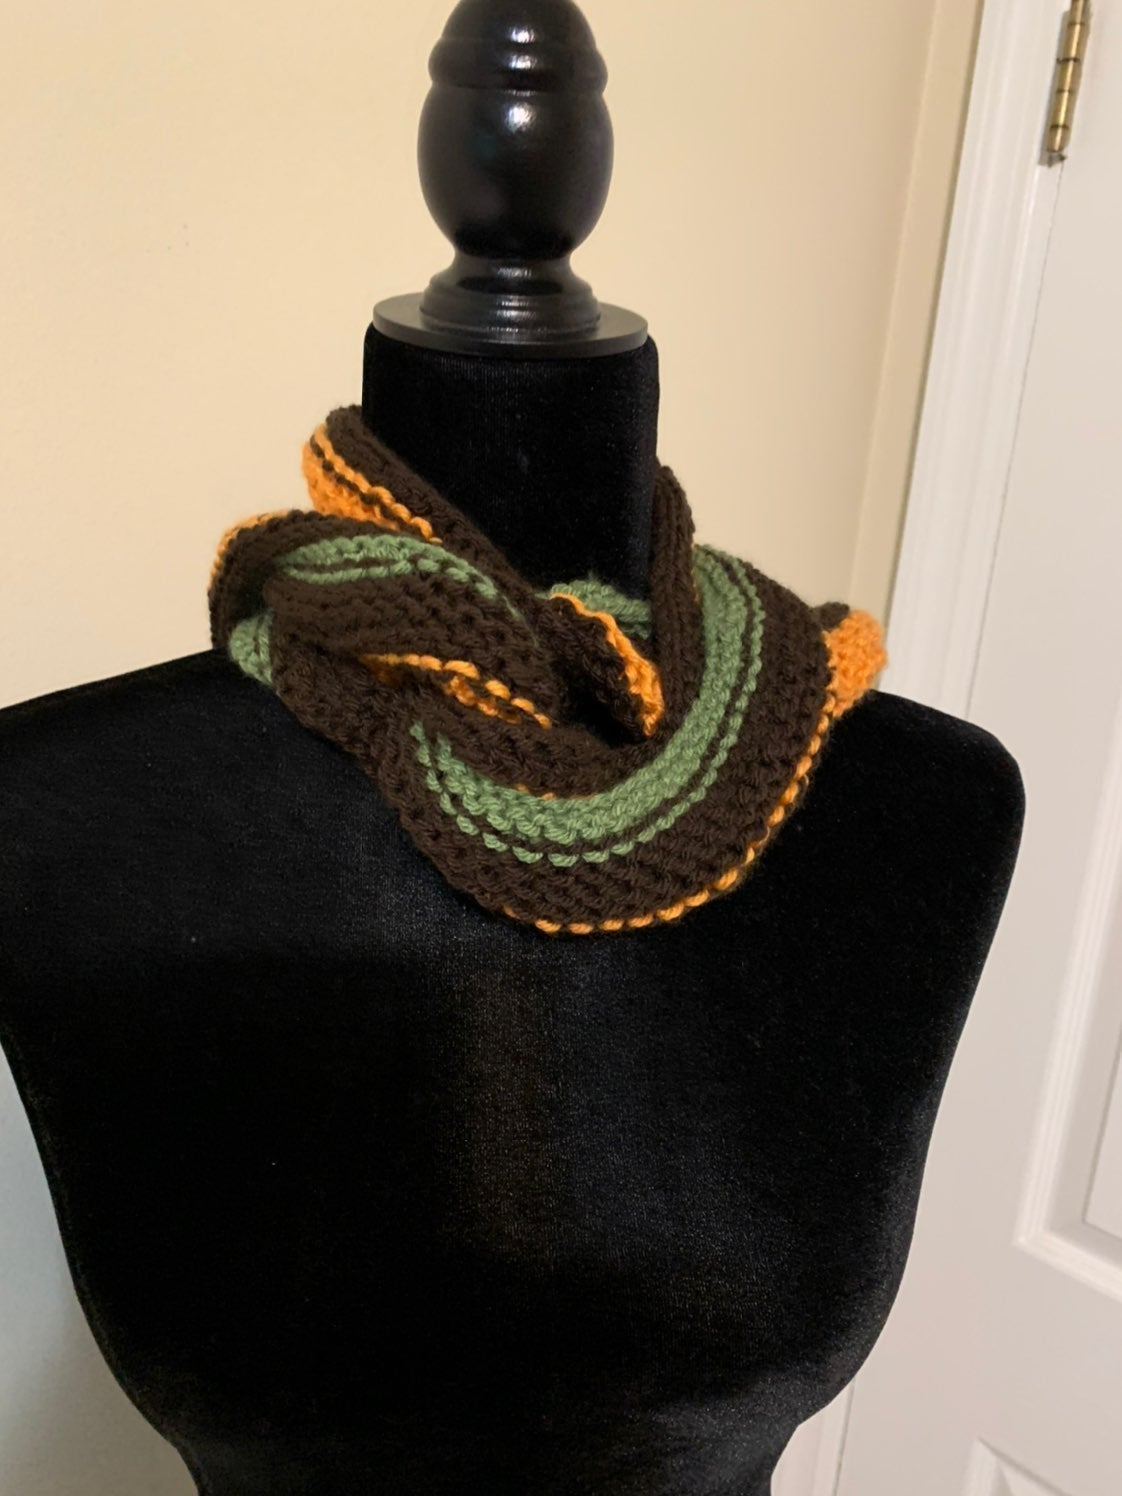 #5 - Neck Warmers / Scarf